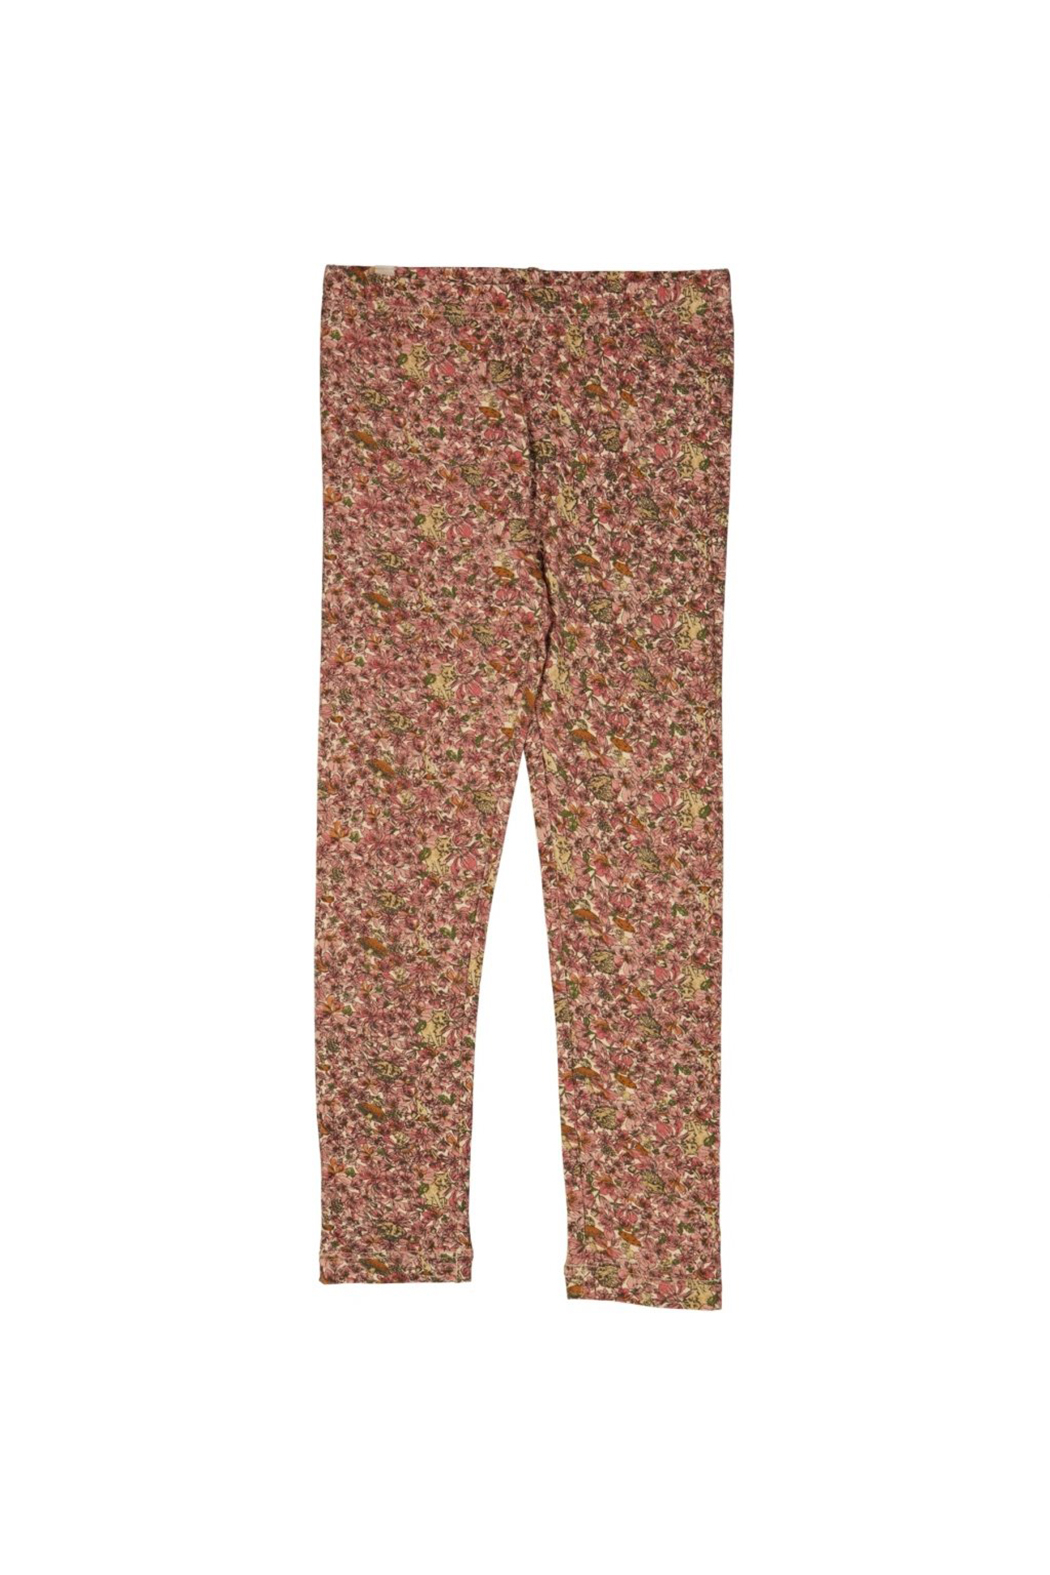 Wheat Jersey Leggings - Flowers And Animals - Main Image